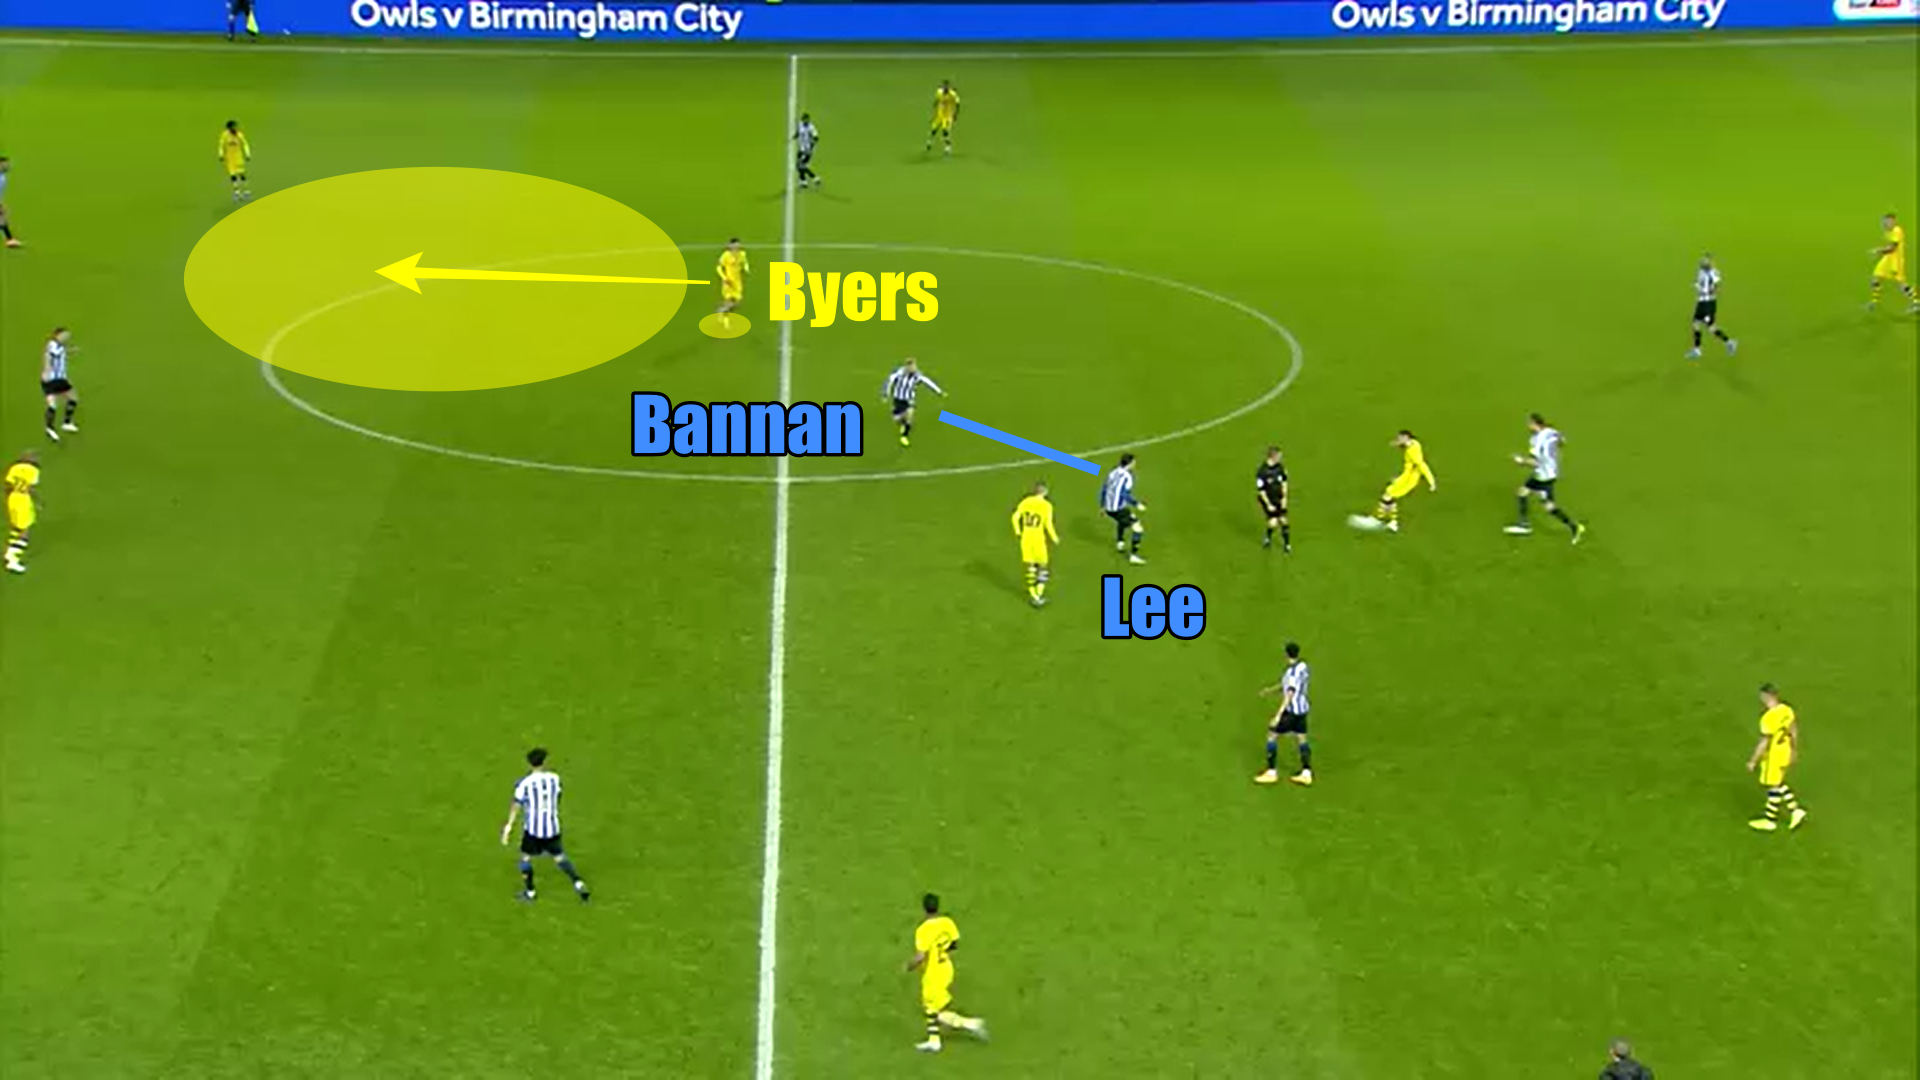 EFL Championship 2019/20: Sheffield Wednesday vs Swansea City - tactical analysis tactics